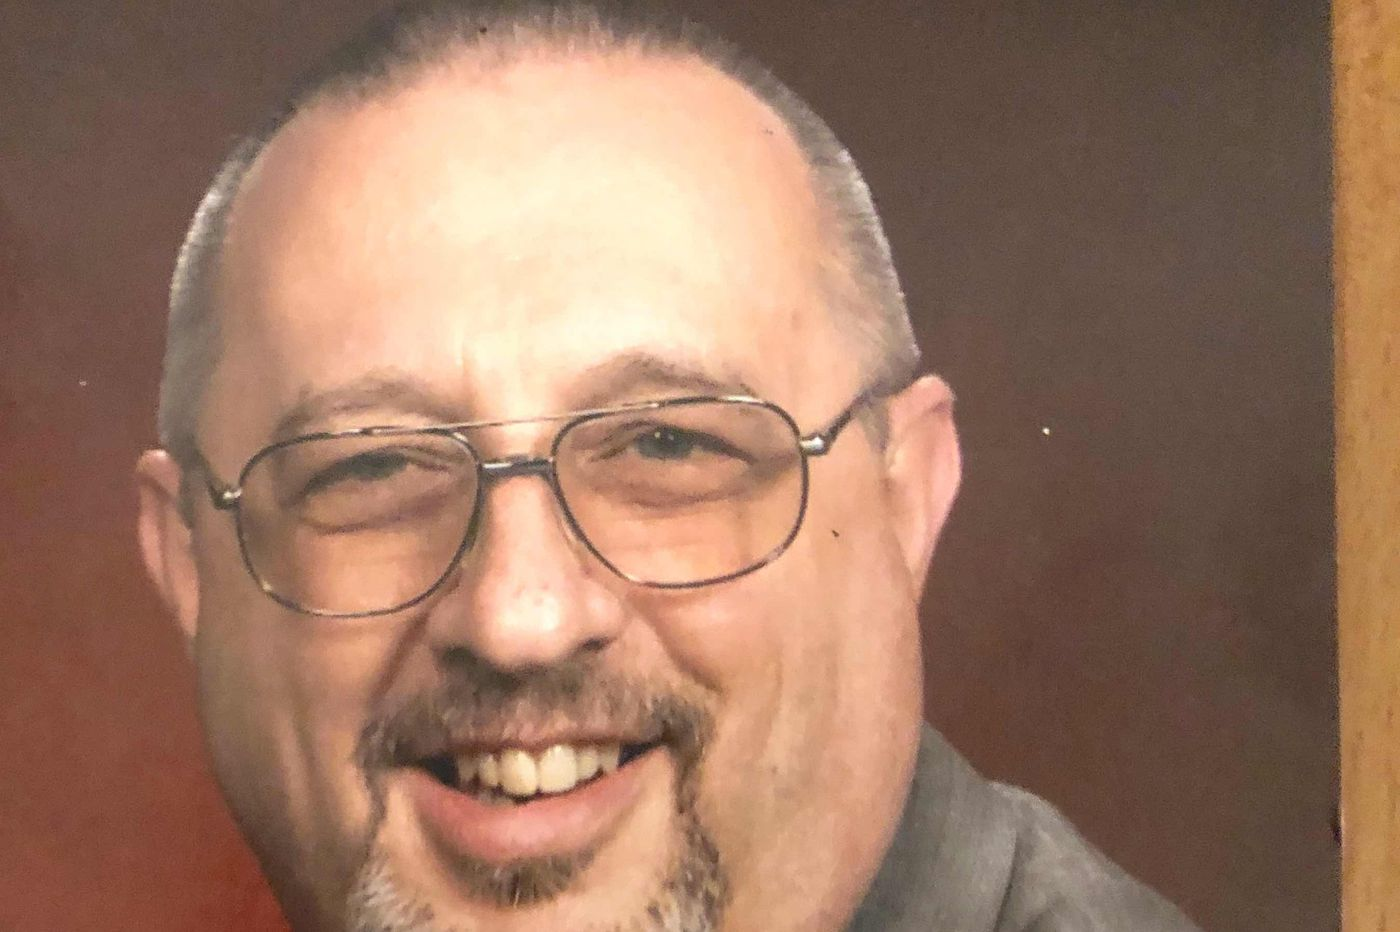 Rev. Edward A. Neiderhiser, 71, Lutheran pastor and chaplaincy director at Graterford